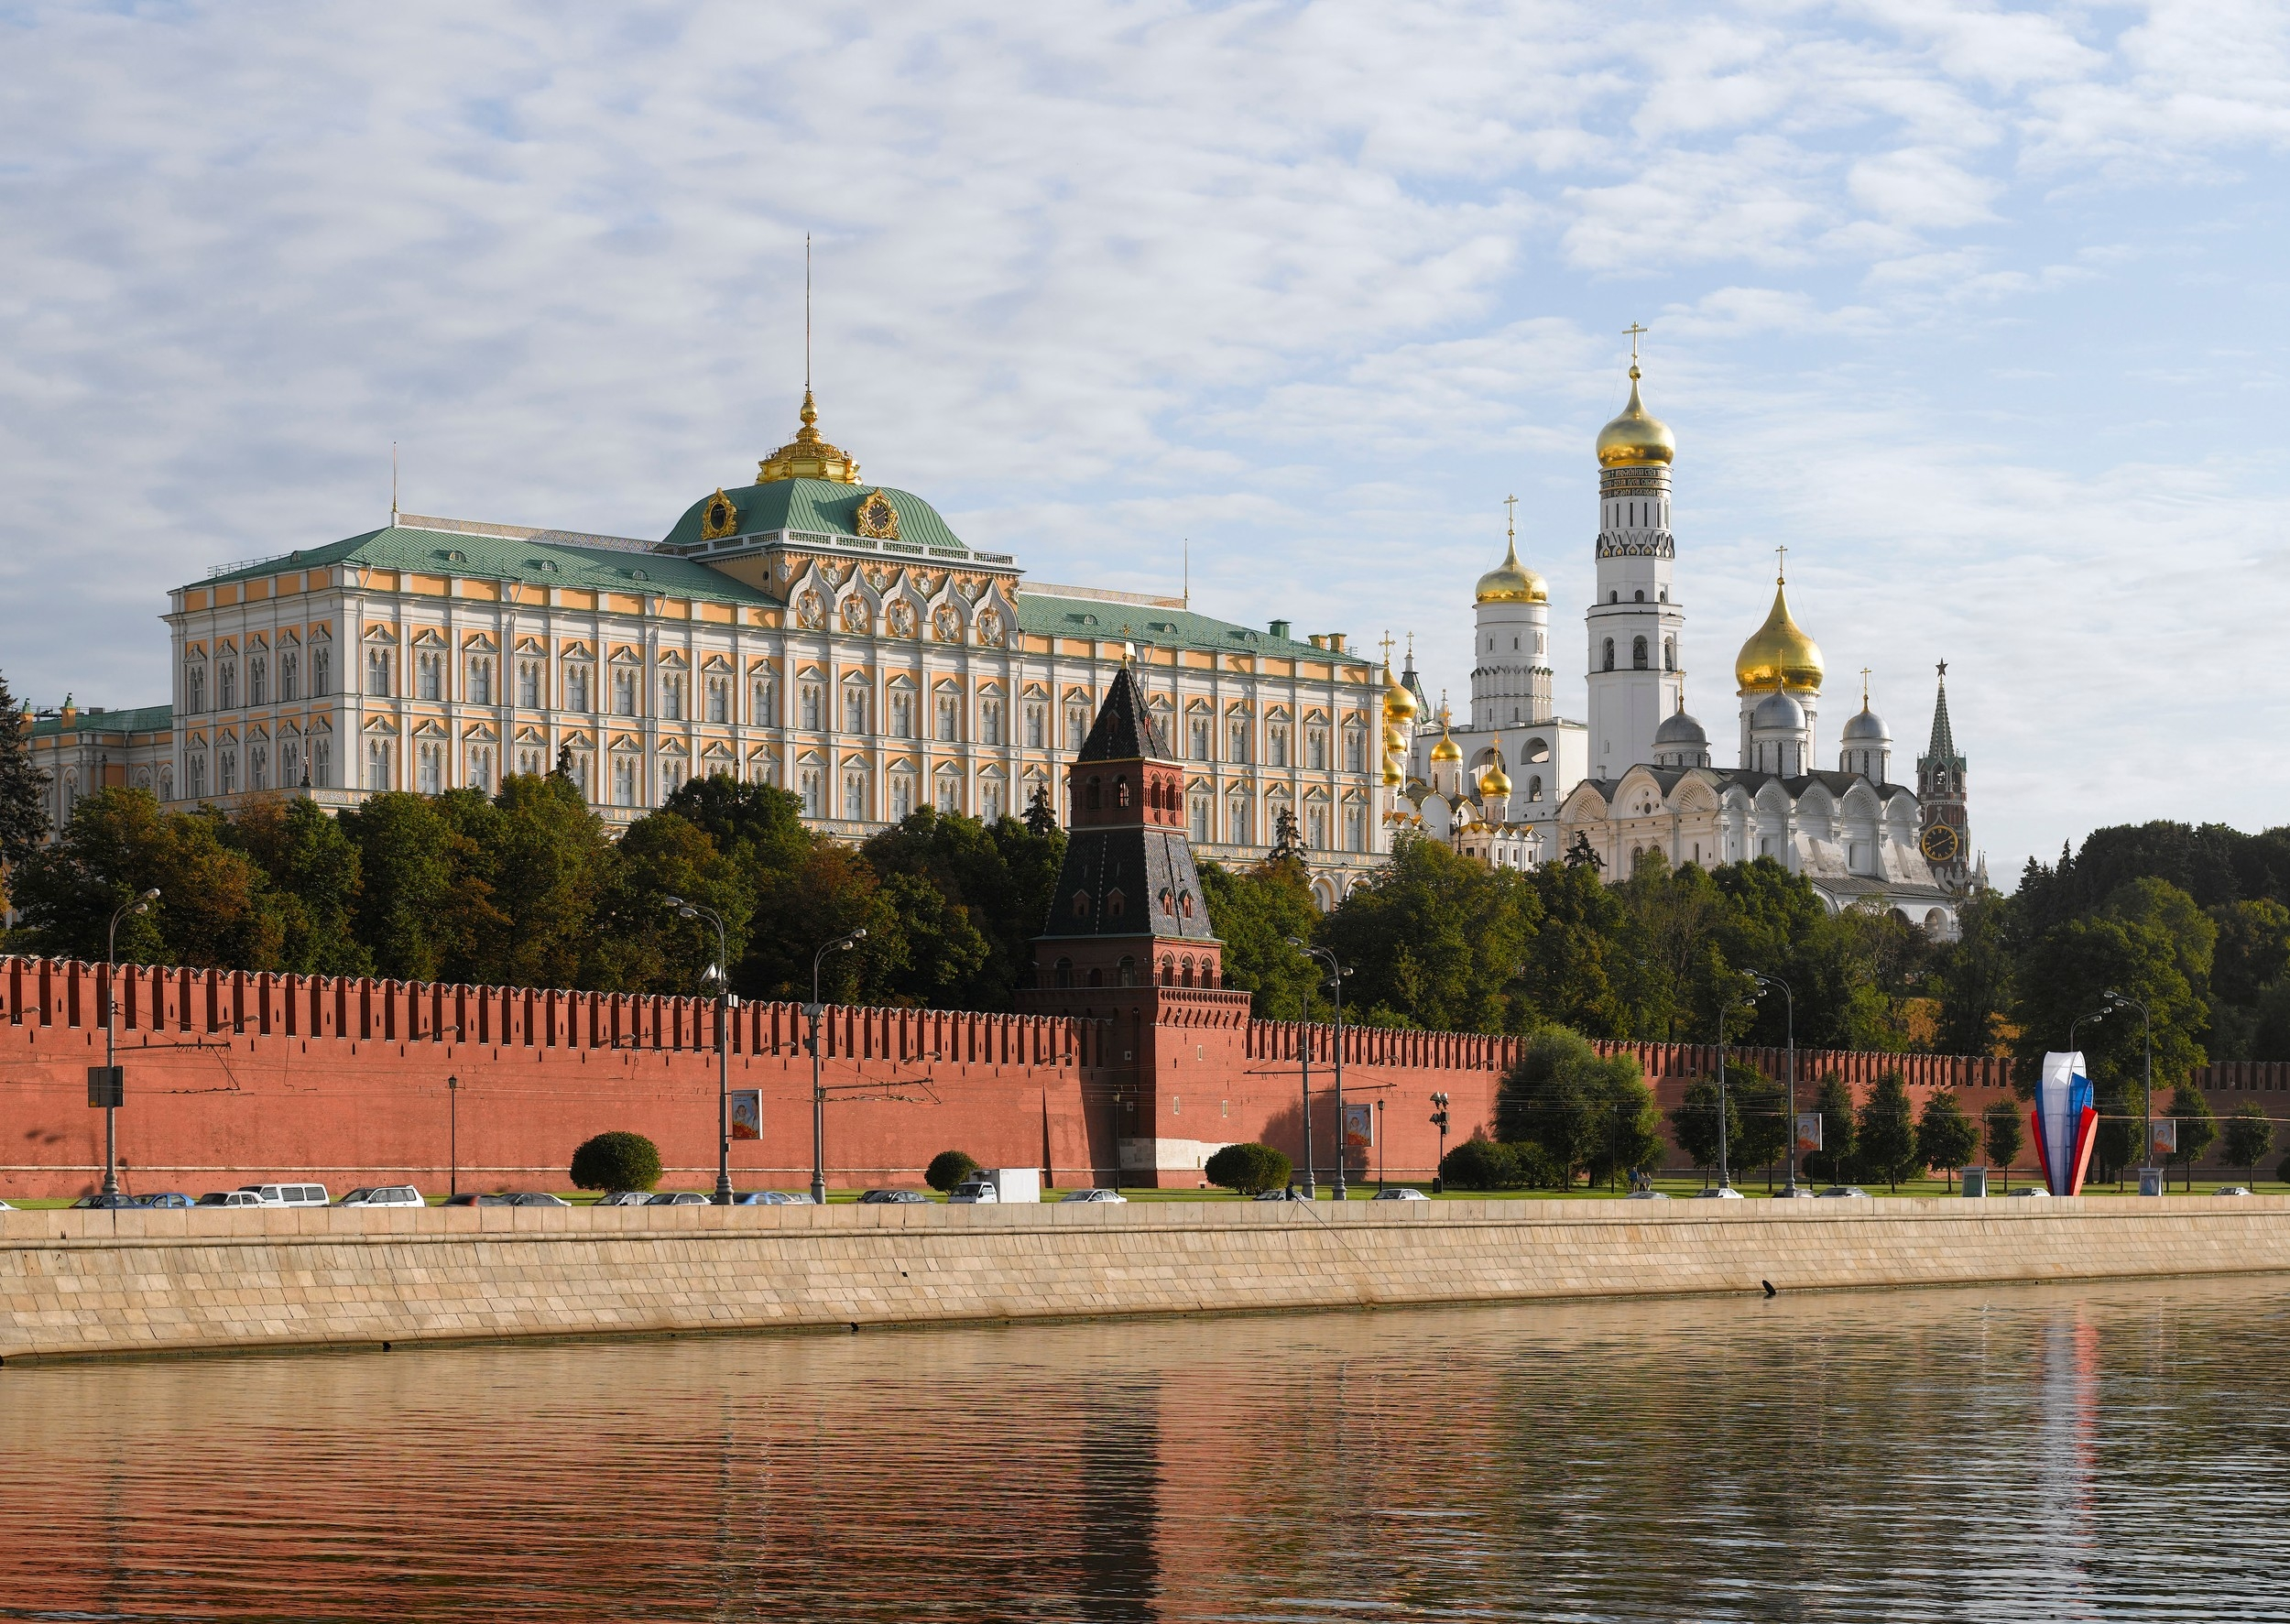 View of the Kremlin from the Moskva River, Moscow, Russia.